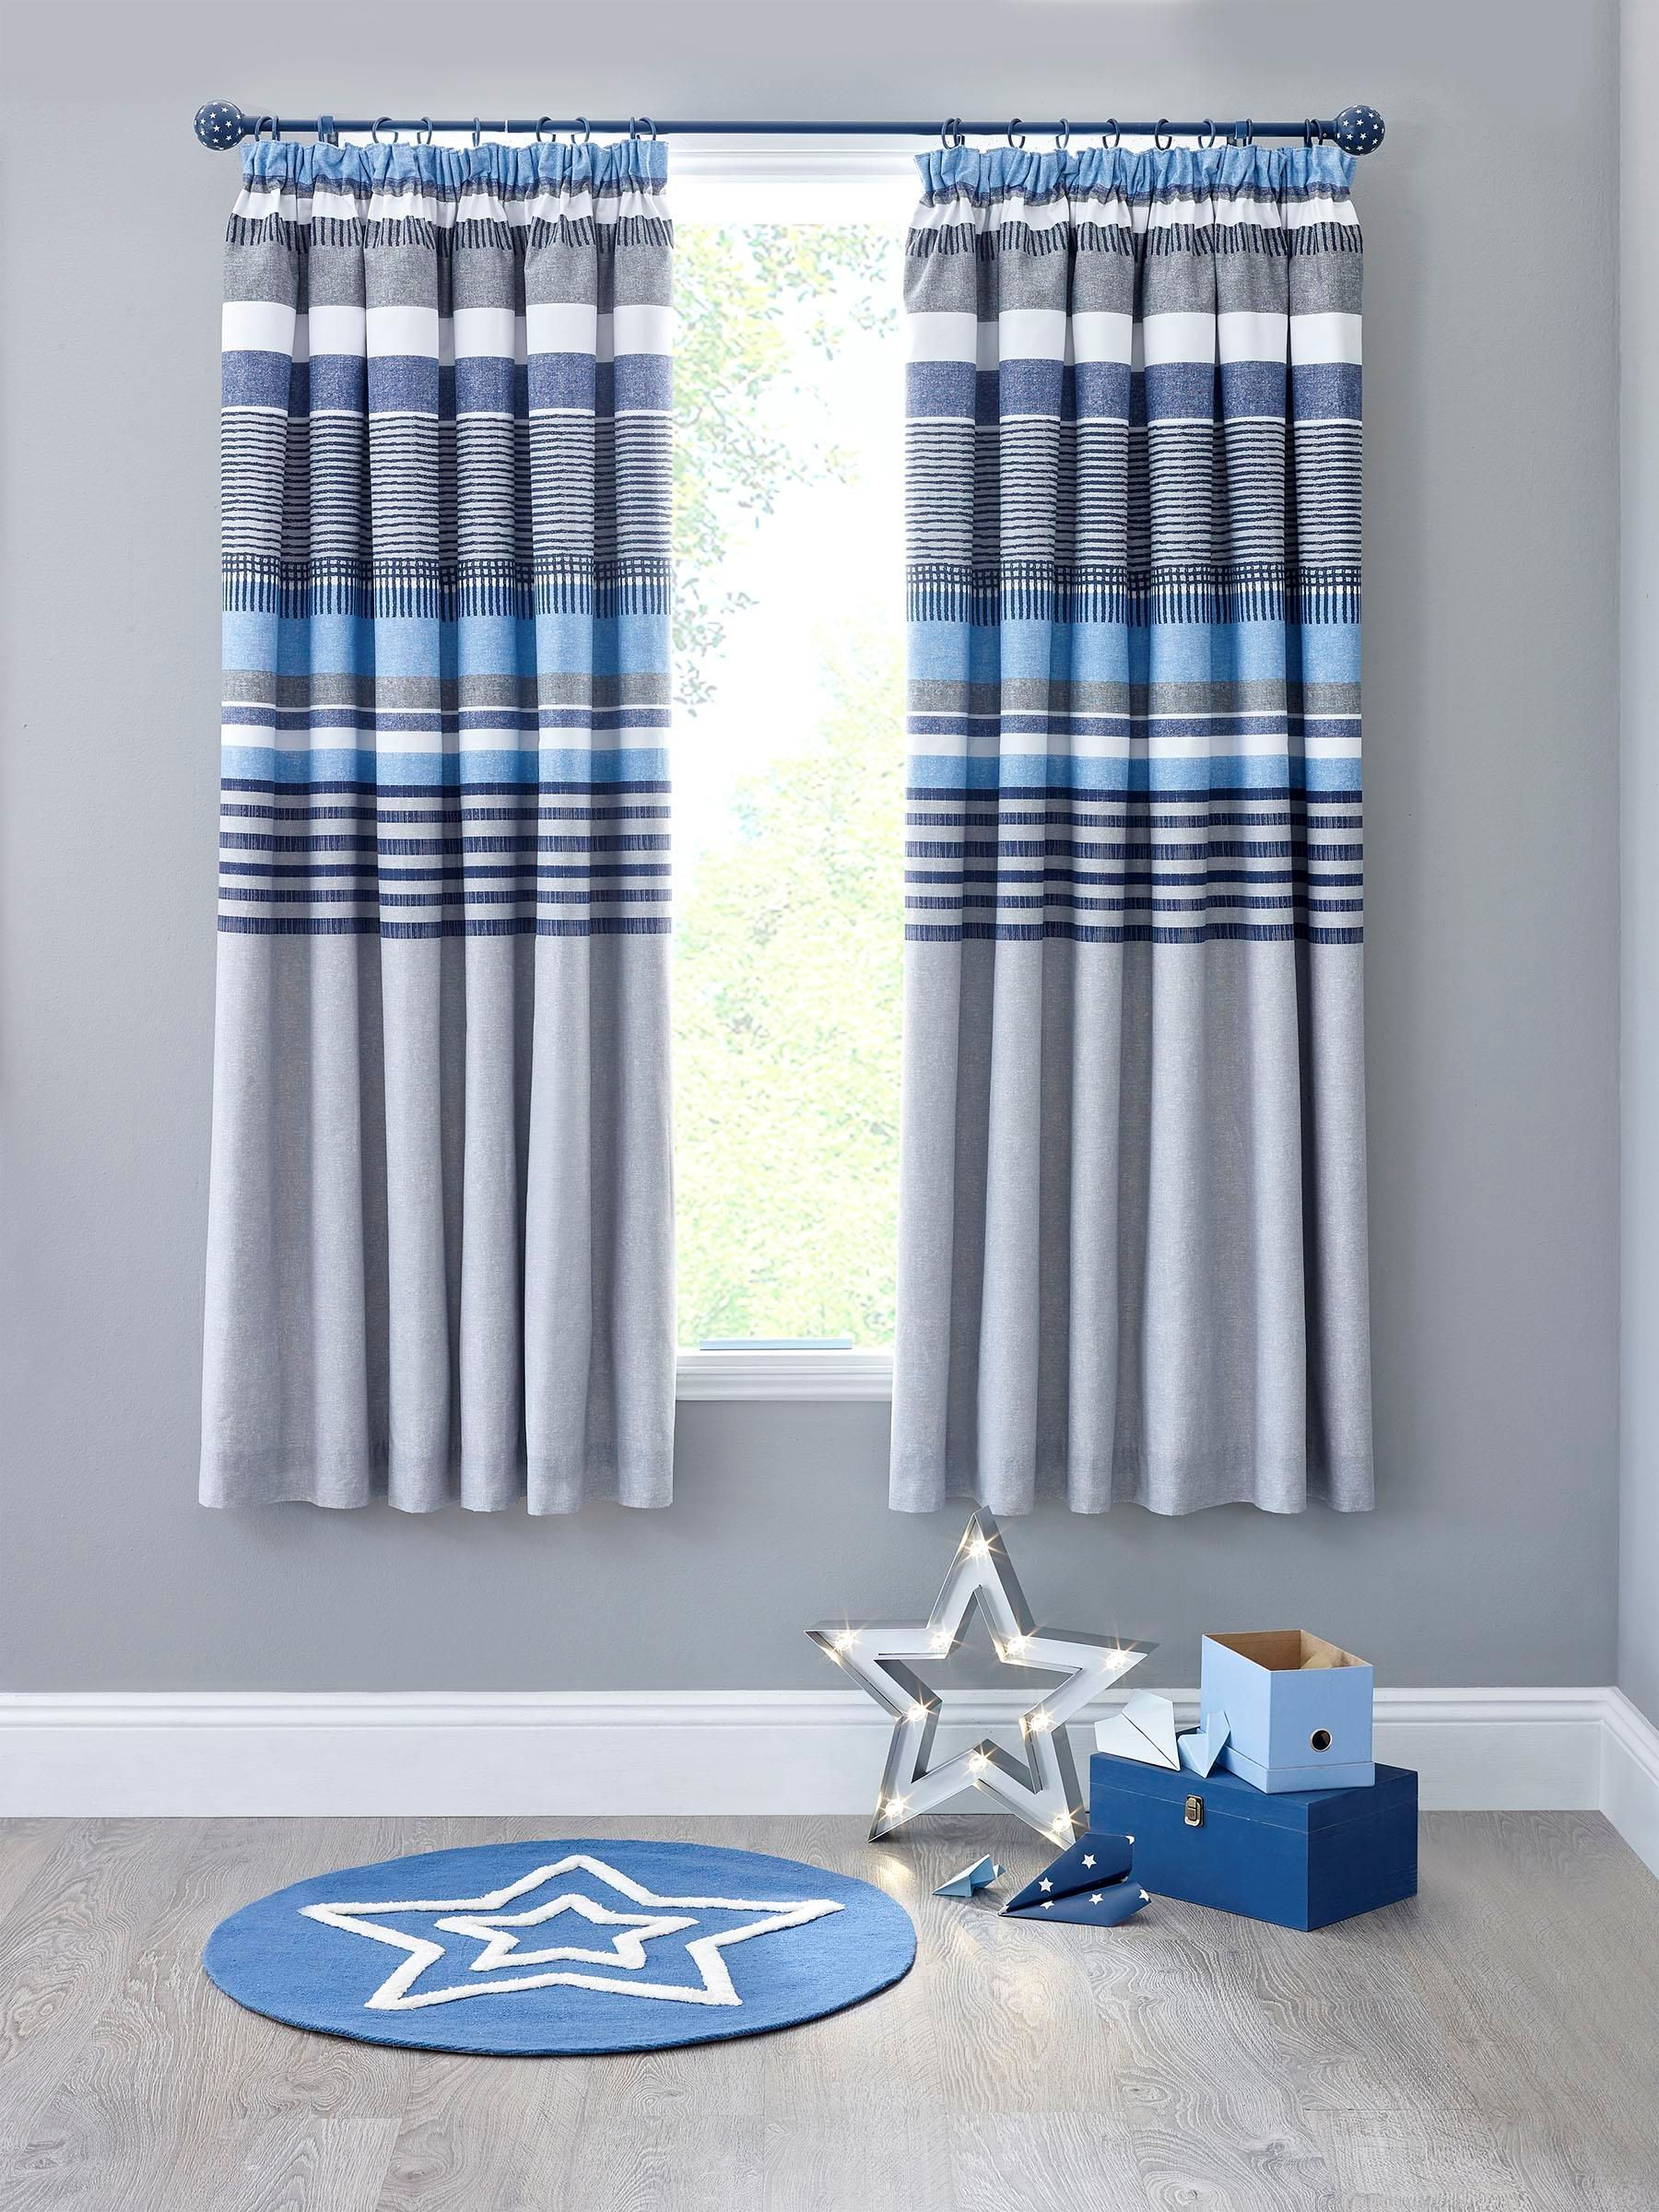 chambray reviews bath lane curtain pdp shower ewen birch curtains bed